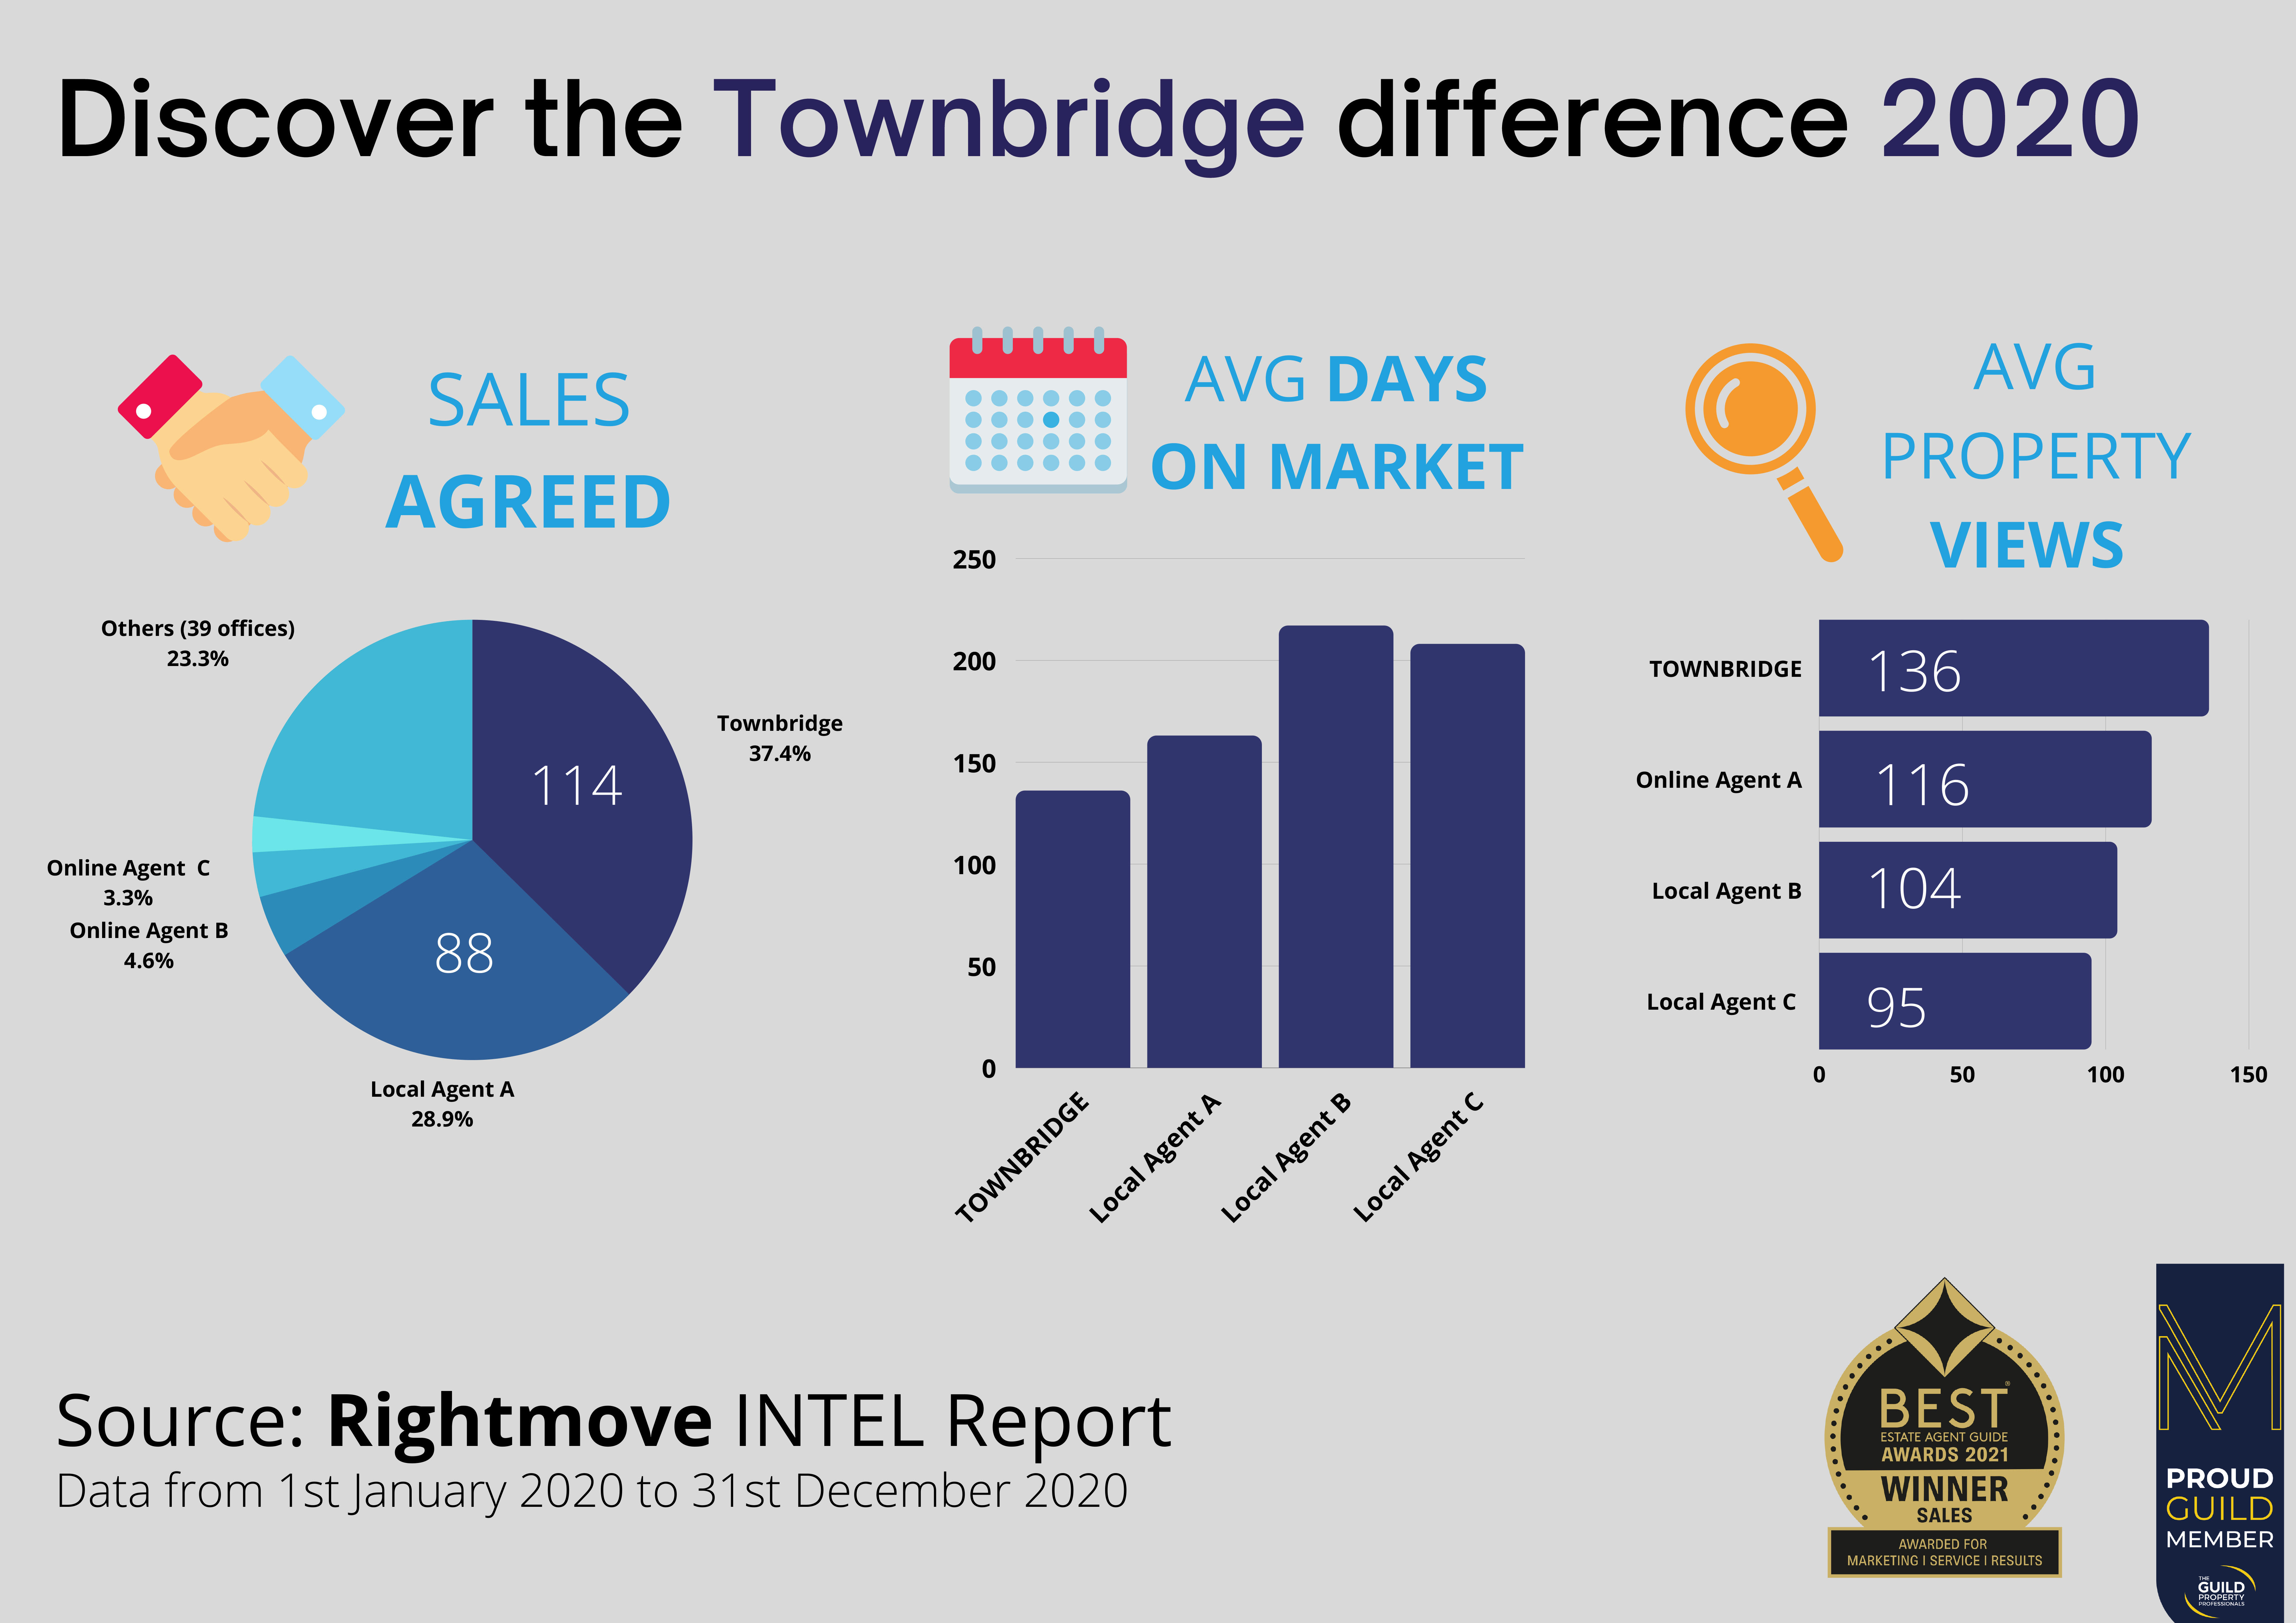 townbridge_2020_-_difference